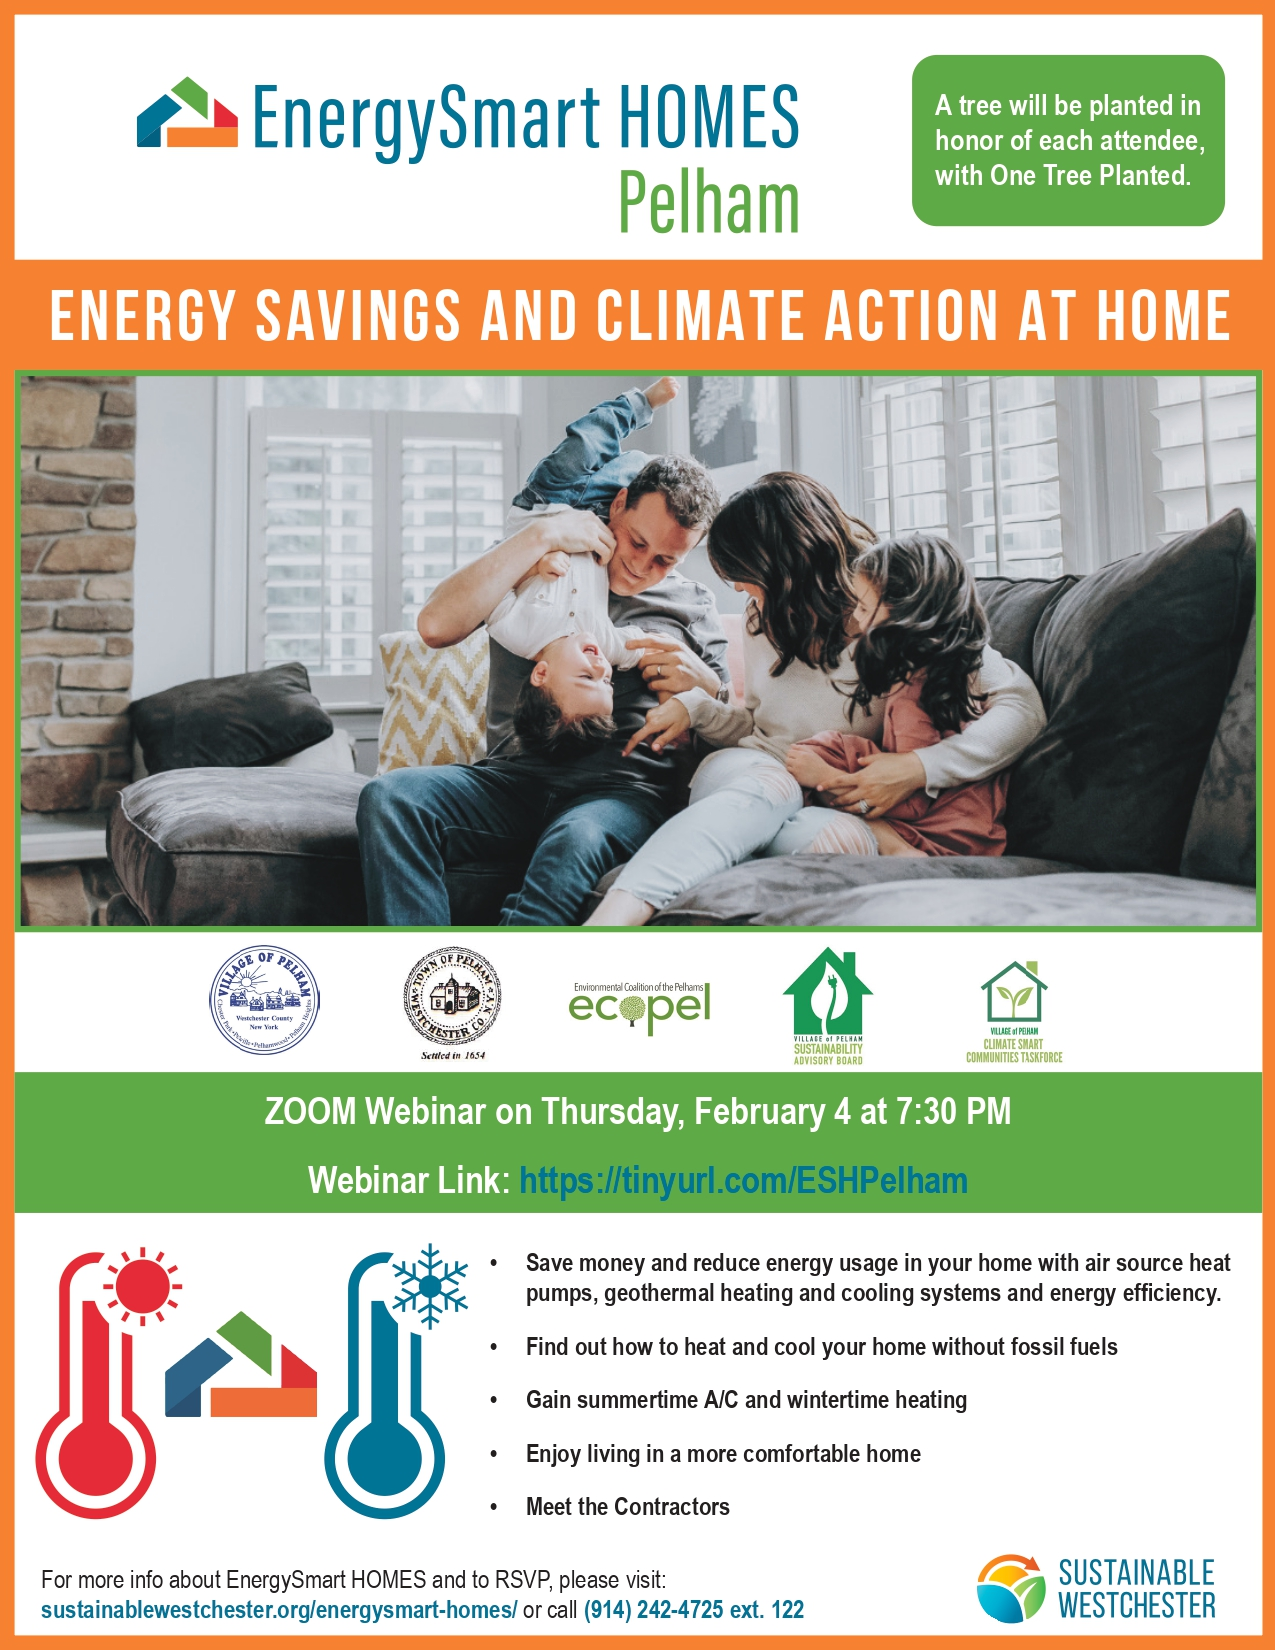 High Heating Bills? Join the EnergySmart Homes Pelham Webinar